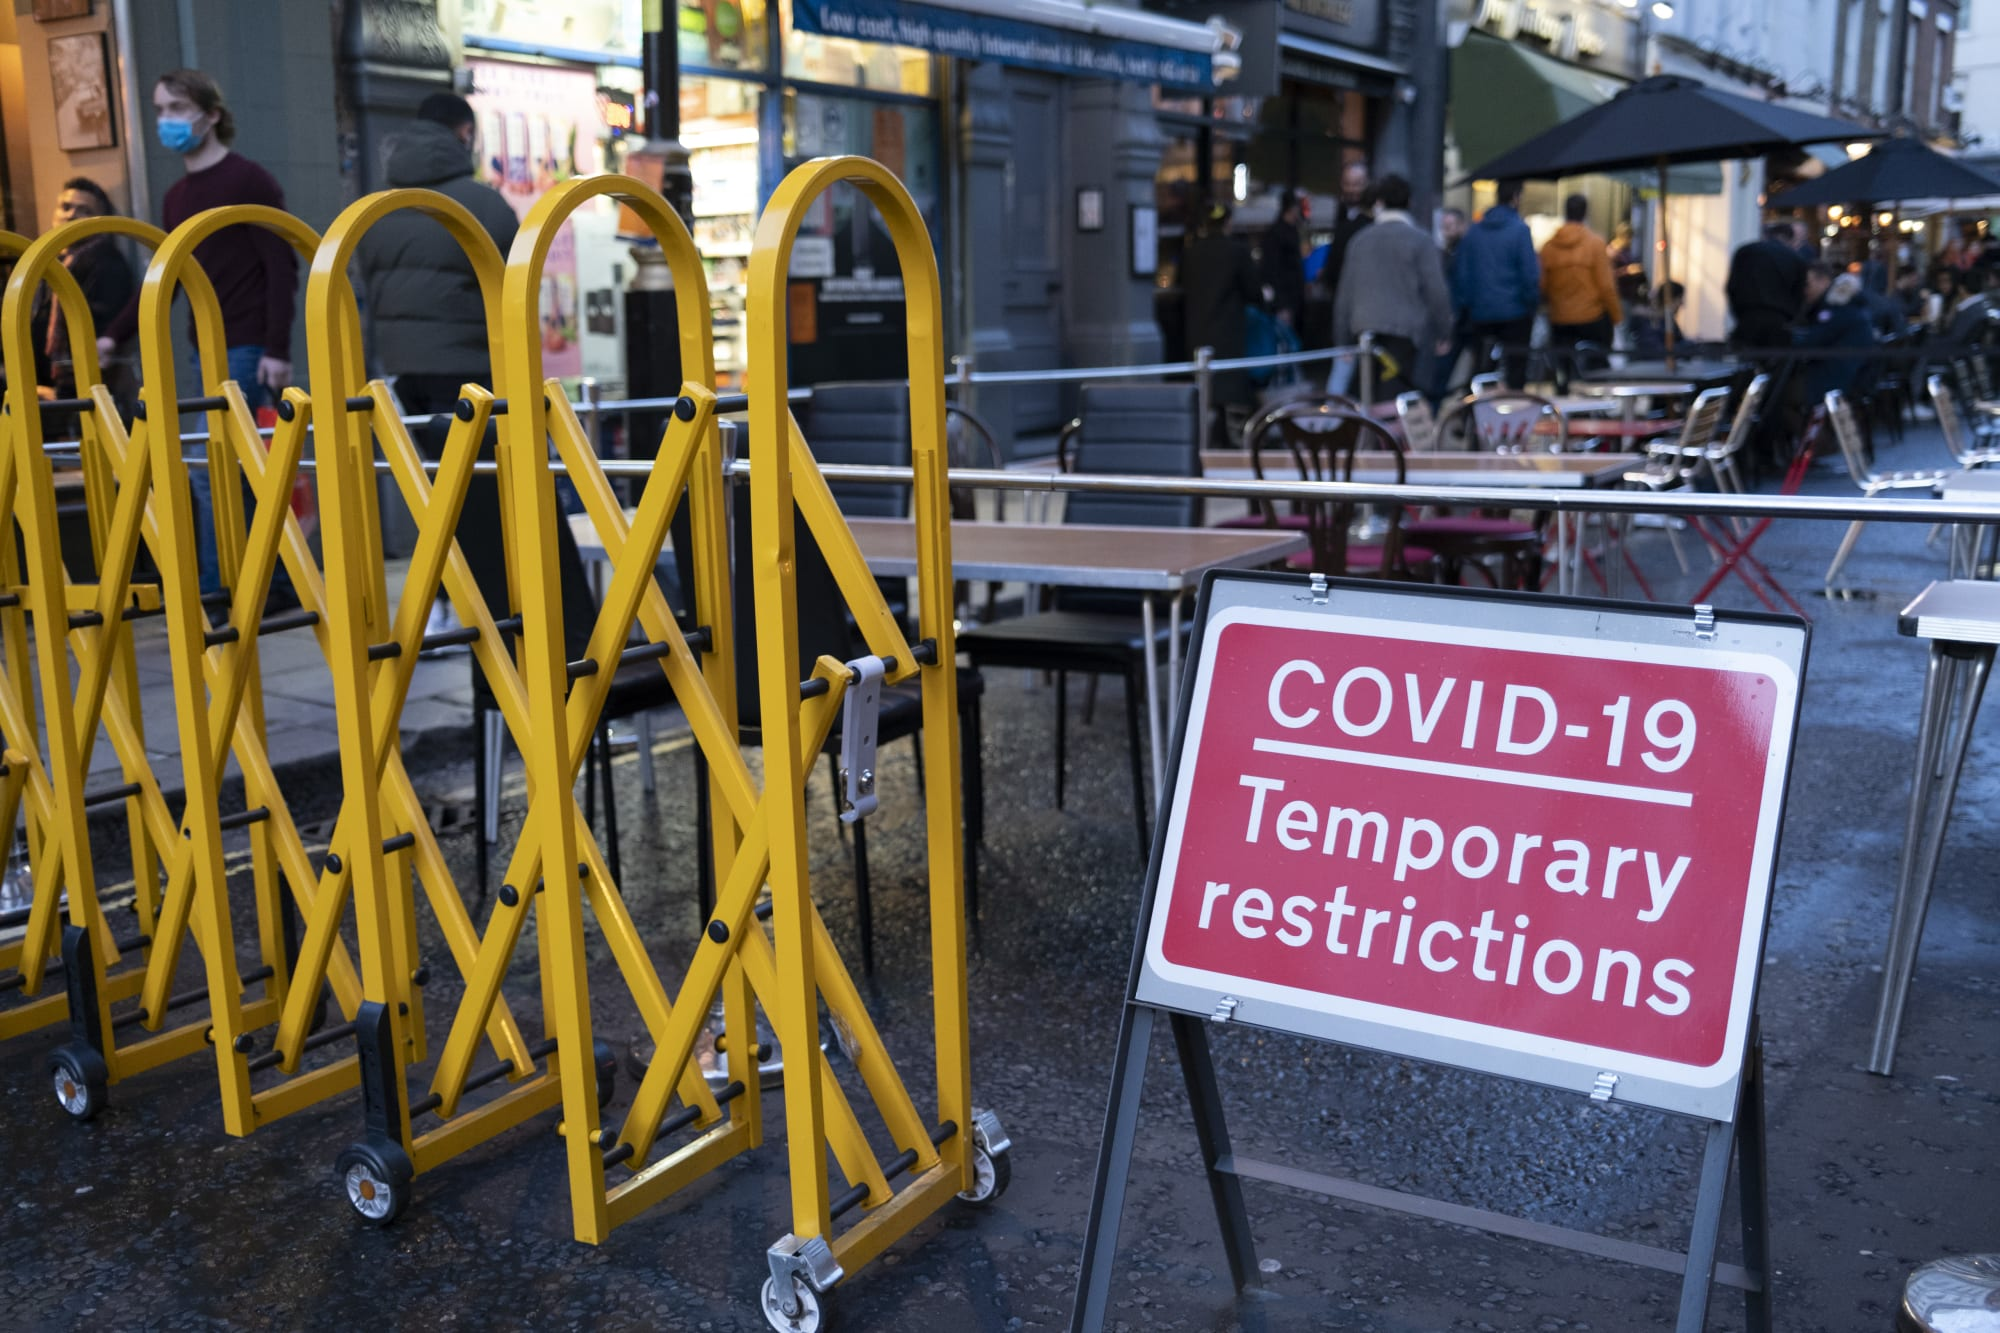 Business As Usual In Soho As London Anticipates Second Lockdown